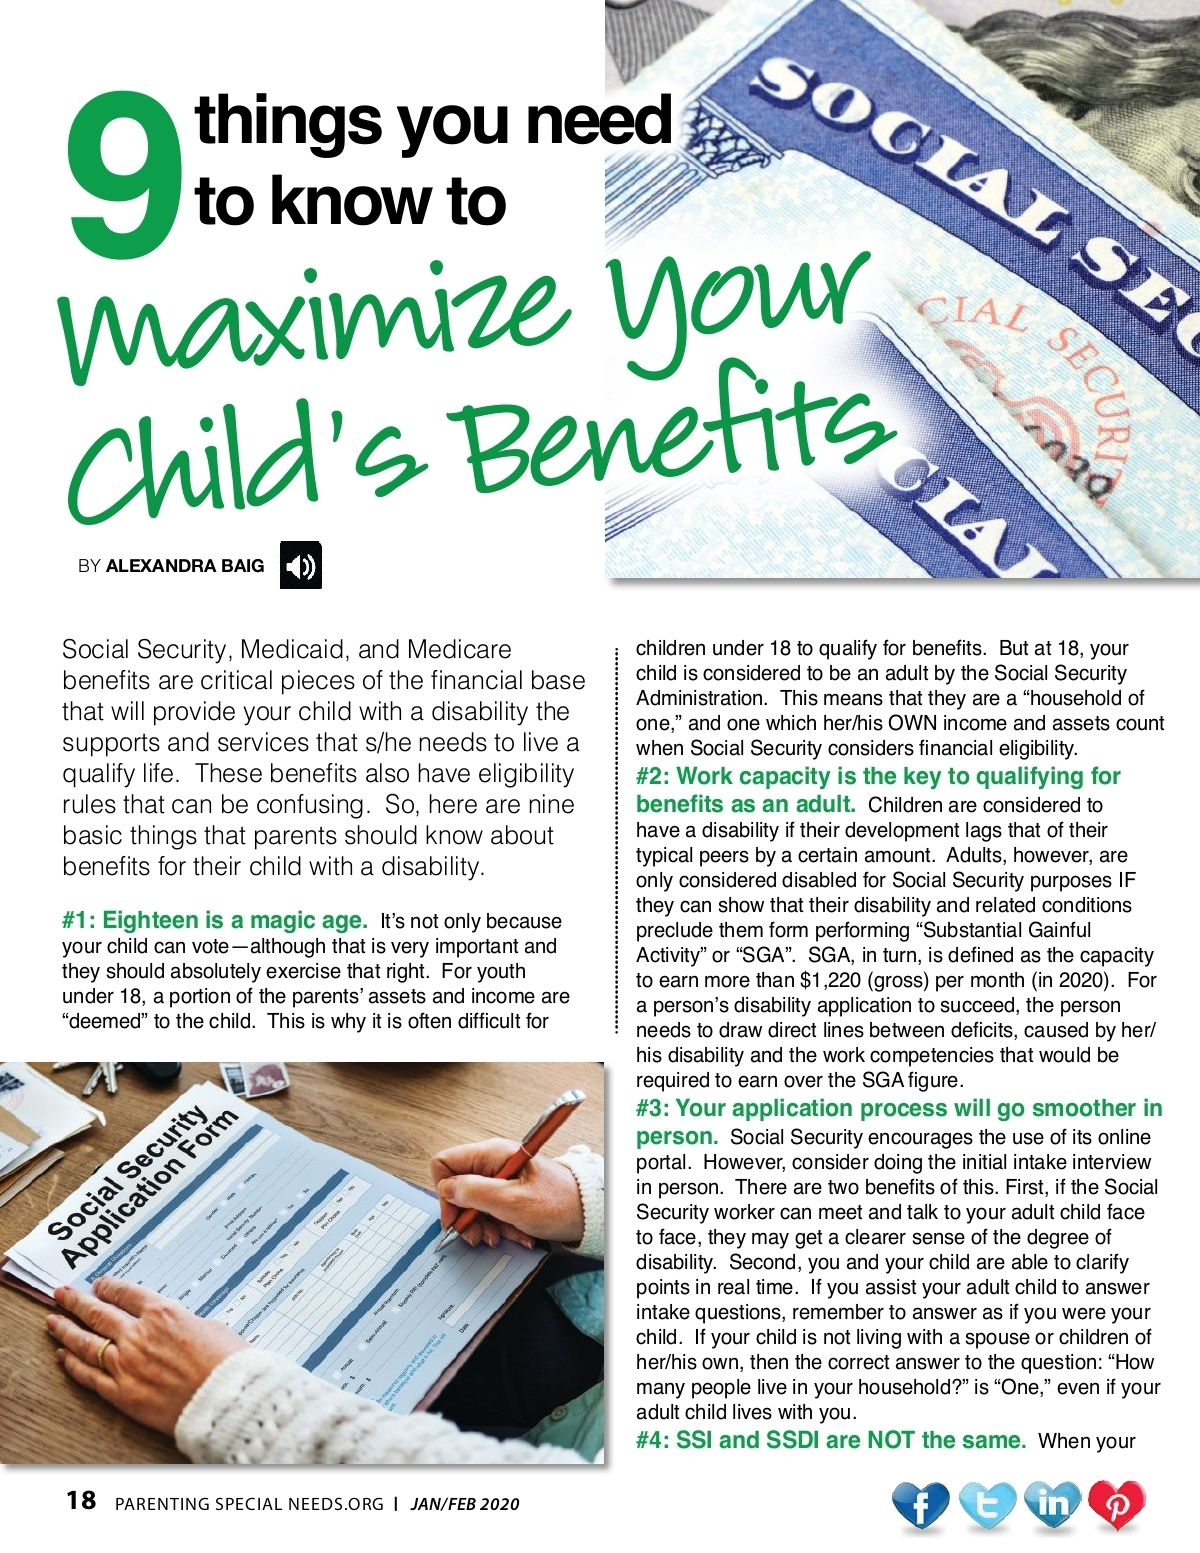 Social Security, Taxes, or Disability benefits might seem